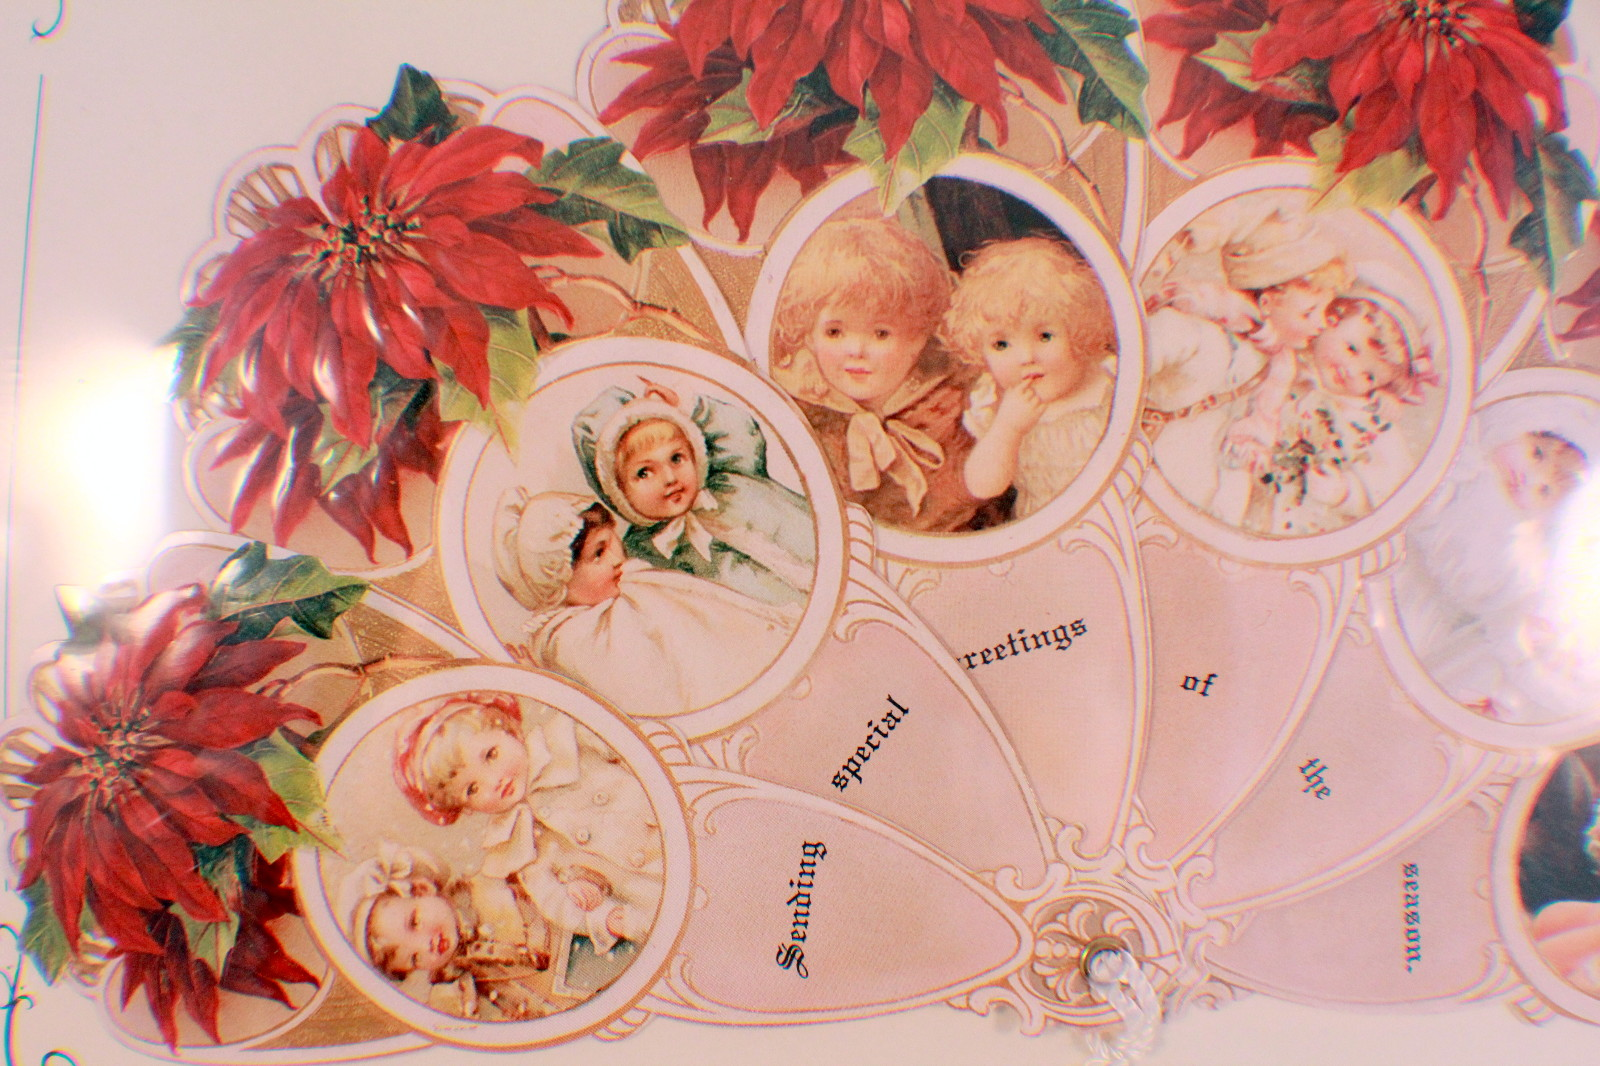 ... fan greeting card old print factory poinsettia kids brand old print